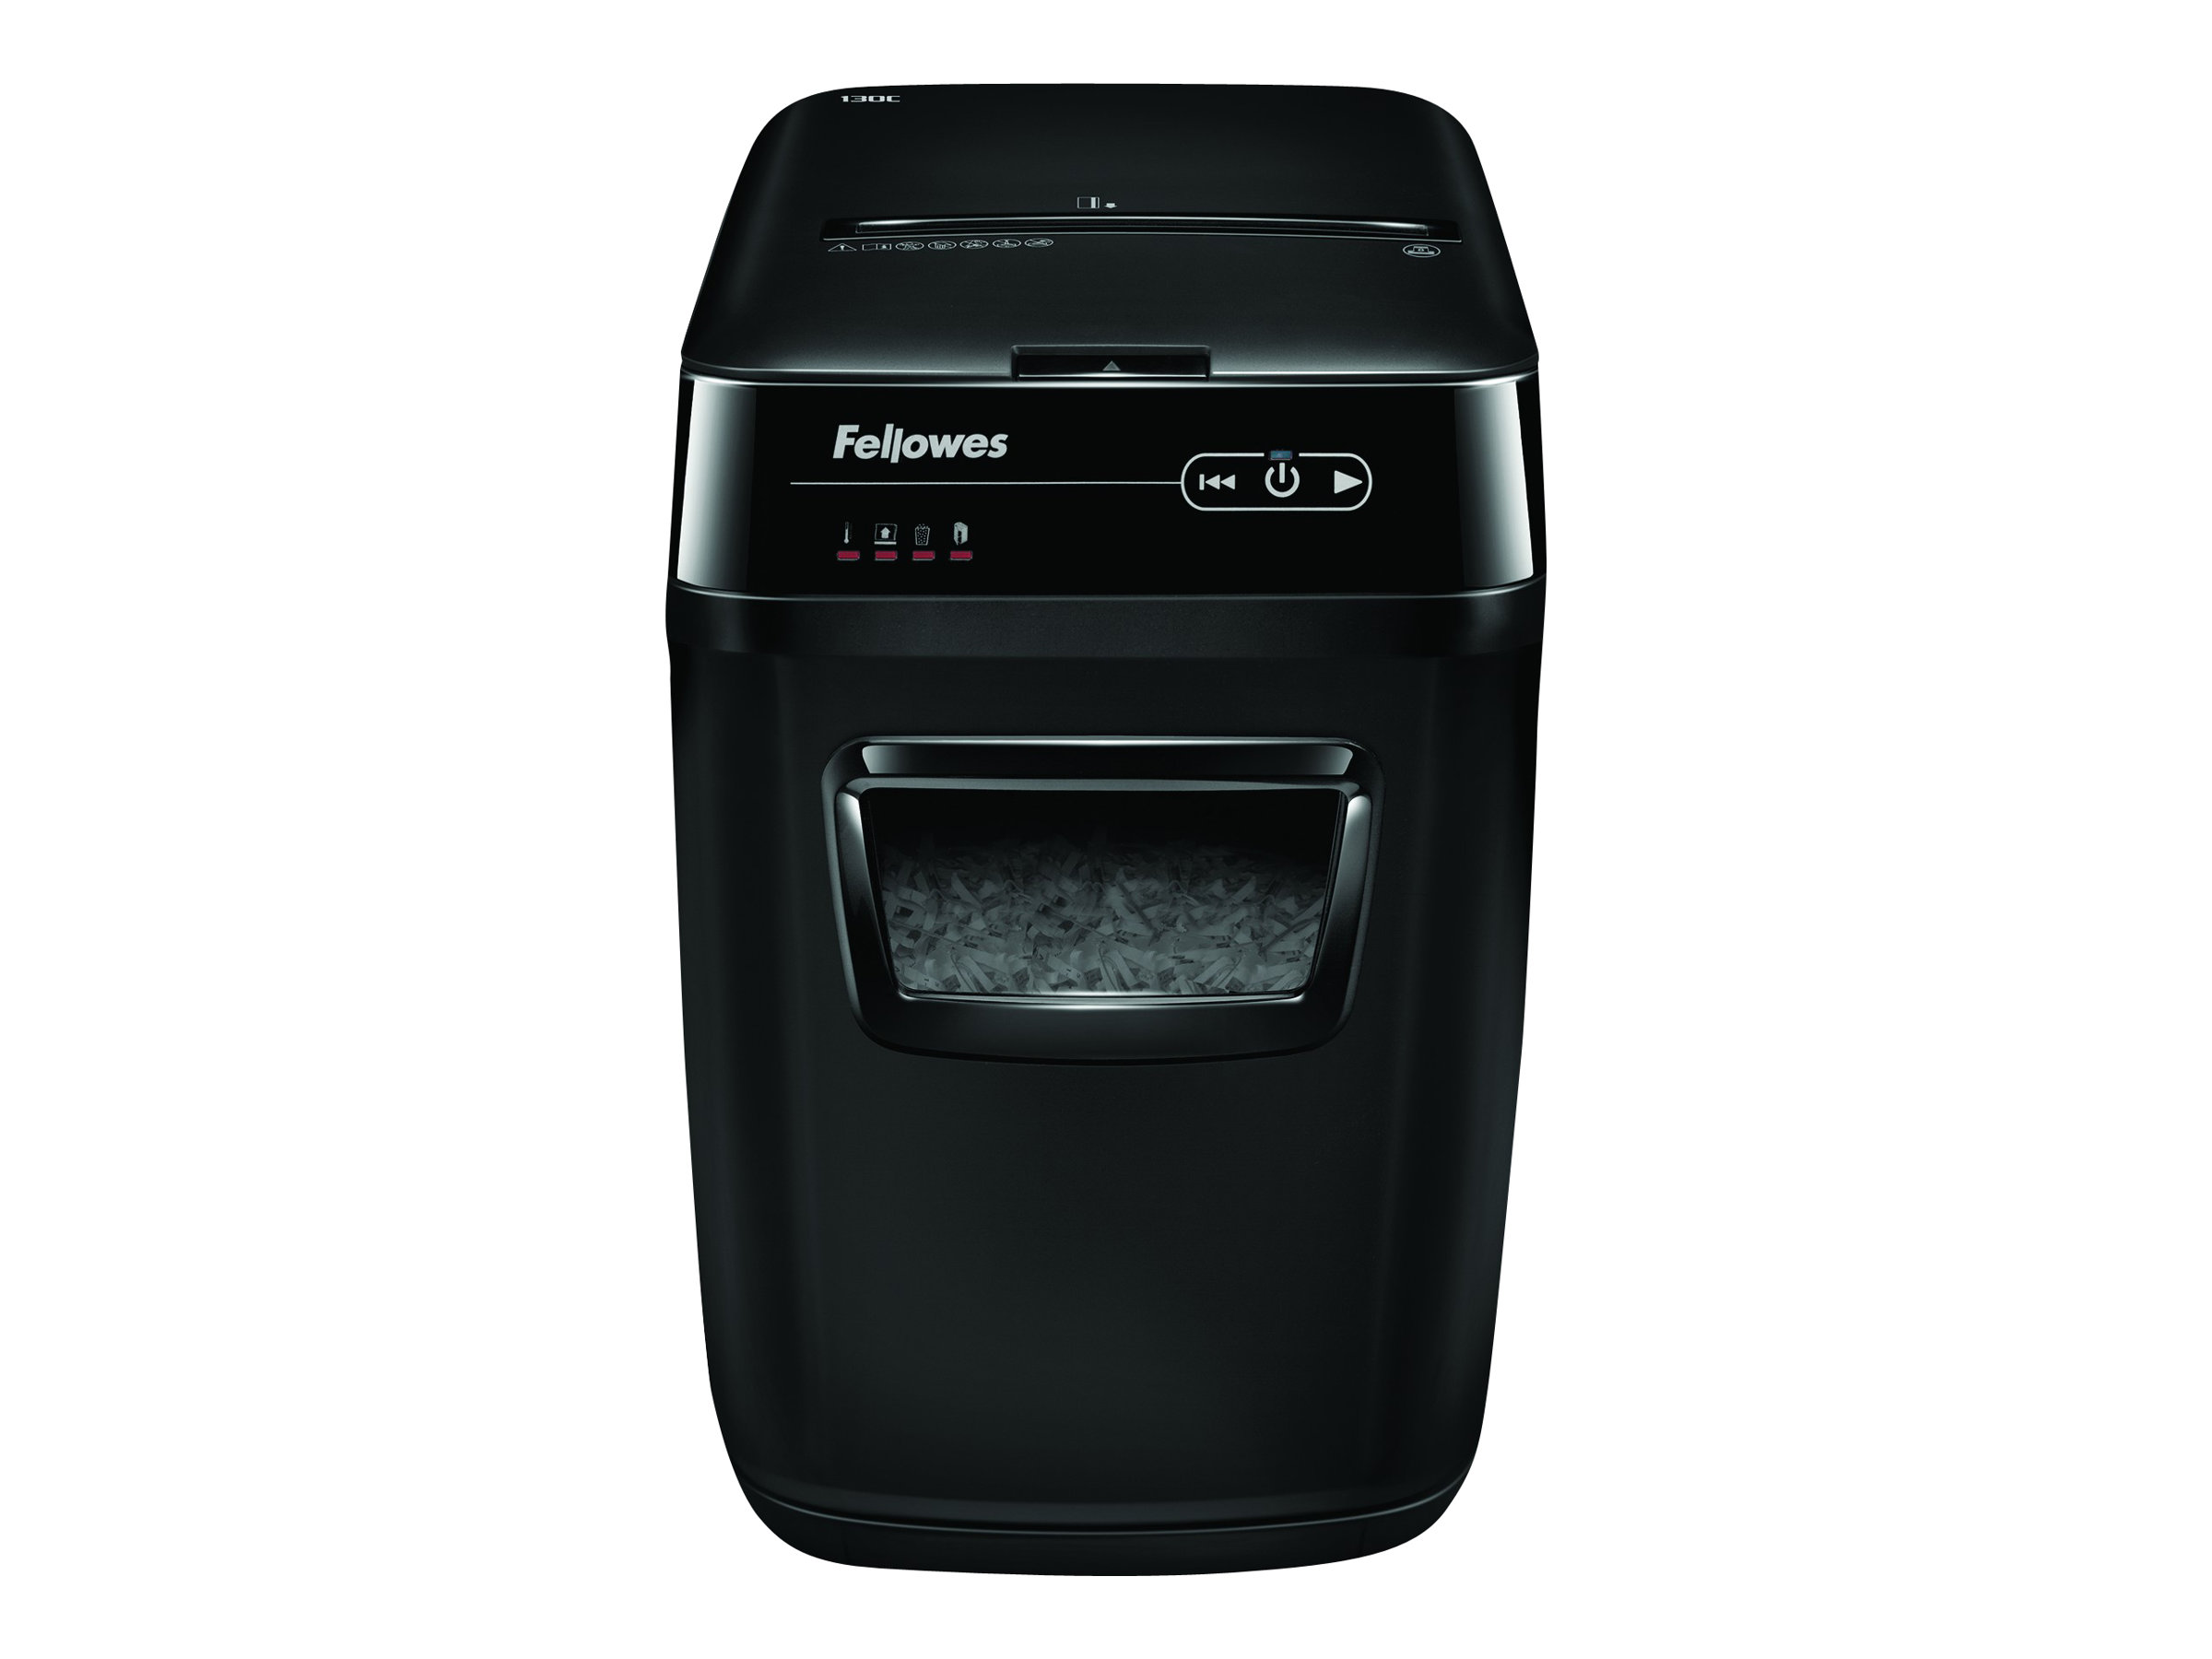 Image for Fellowes Automax 130C - Shredder from Circuit City